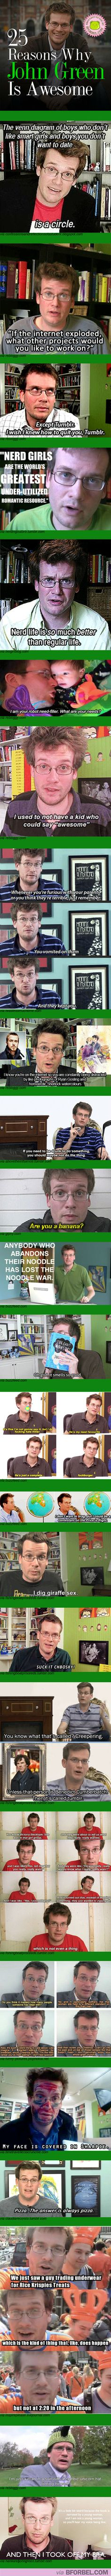 John Green- all good stuff there!